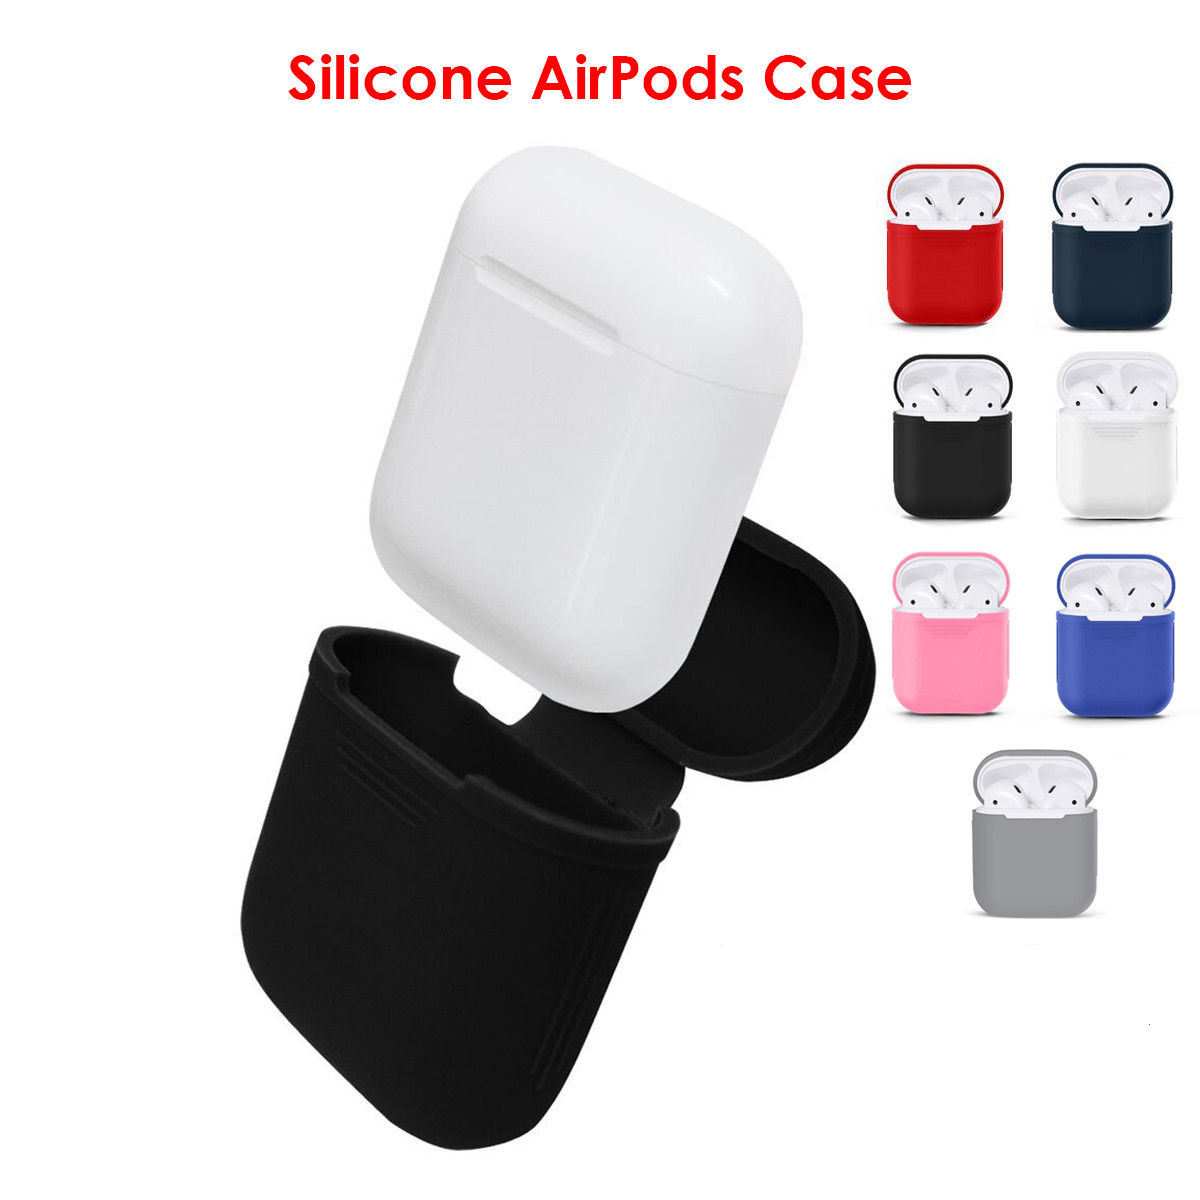 Bluetooth Wireless Case for Airpods dust guard headhone case airpods Accessories off white transparent case for airpods pouch-in Earphone Accessories from Consumer Electronics